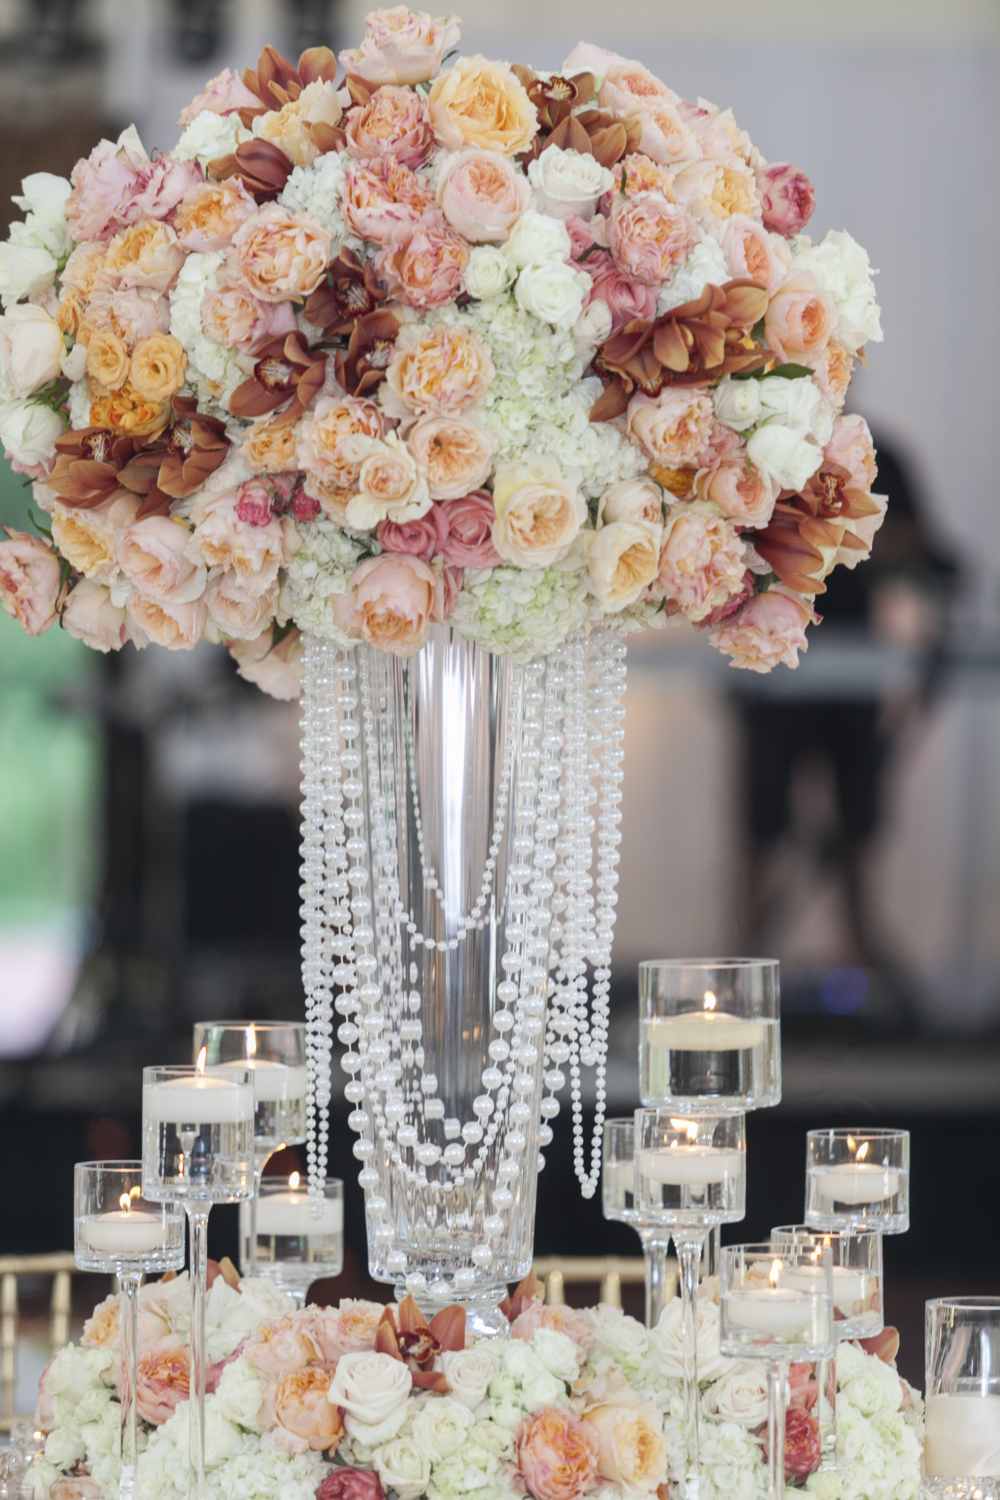 Flowers bobbi rice weddings my love affair with beautiful flowers began in california it was where i was working on some truly breathtaking events where every facet of the events was izmirmasajfo